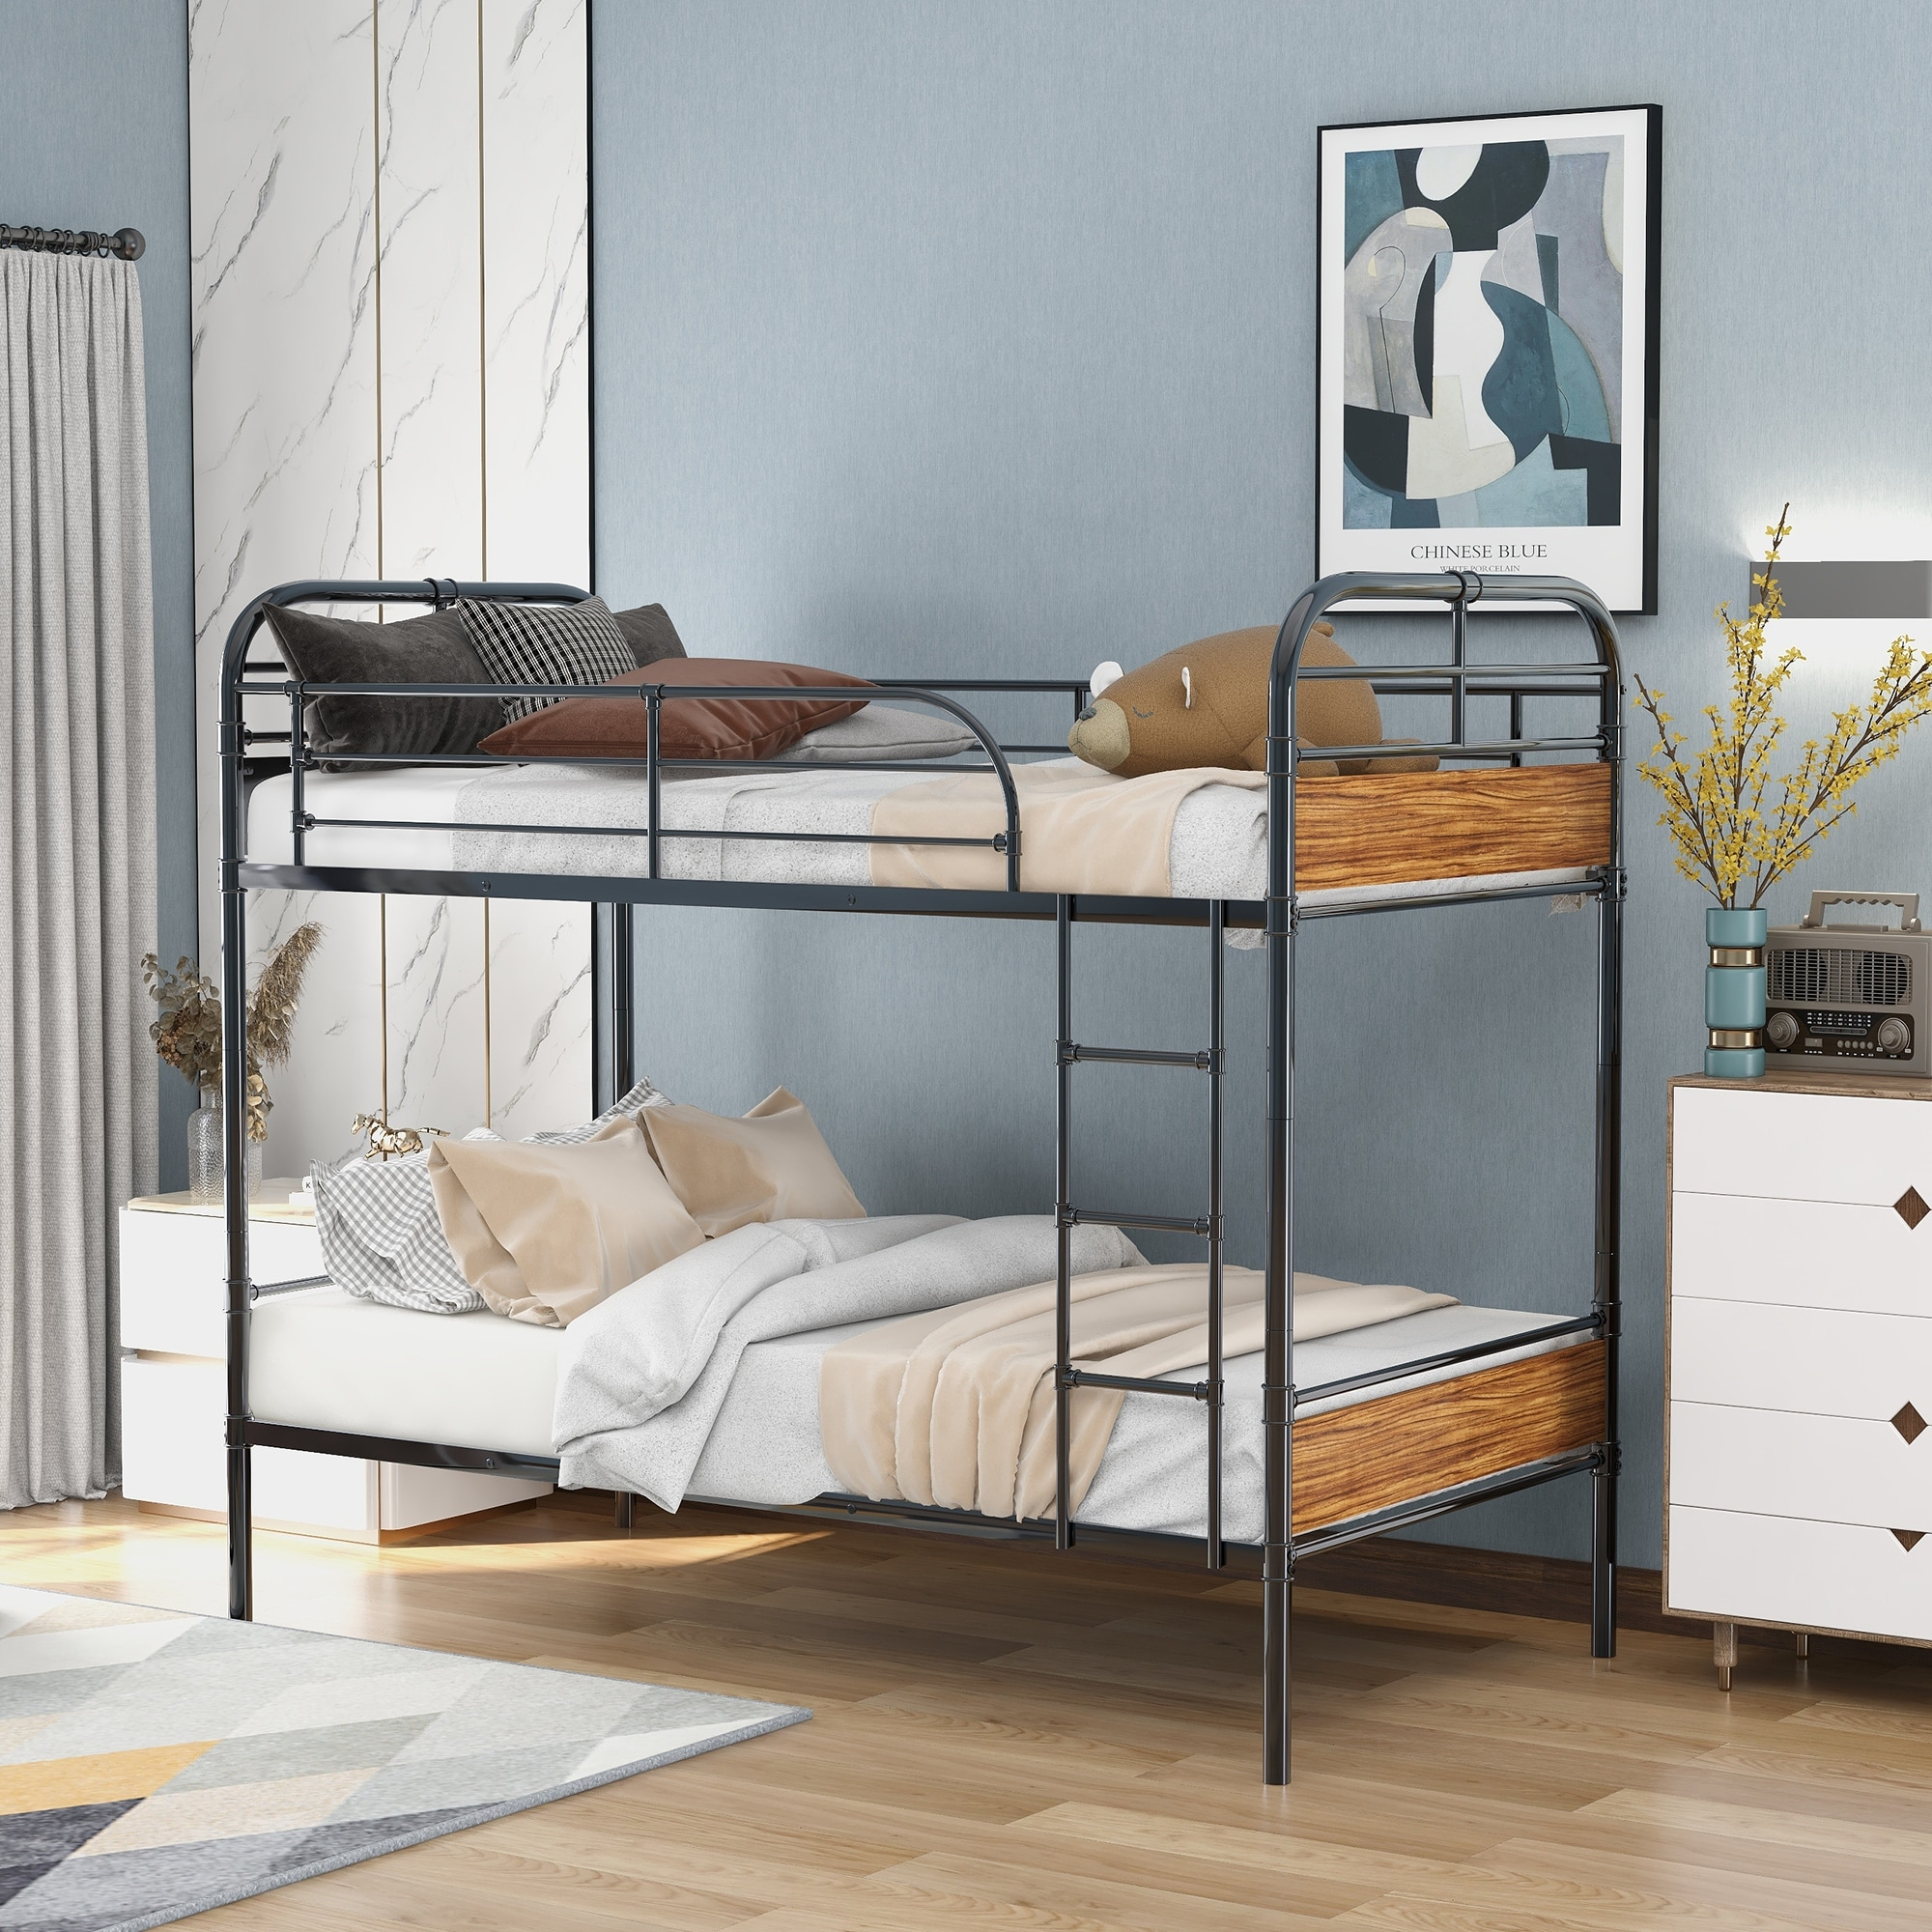 Image of: Shop Black Friday Deals On Twin Over Twin Bunk Bed With Sturdy Steel Frame And Headboards On Sale Overstock 32221788